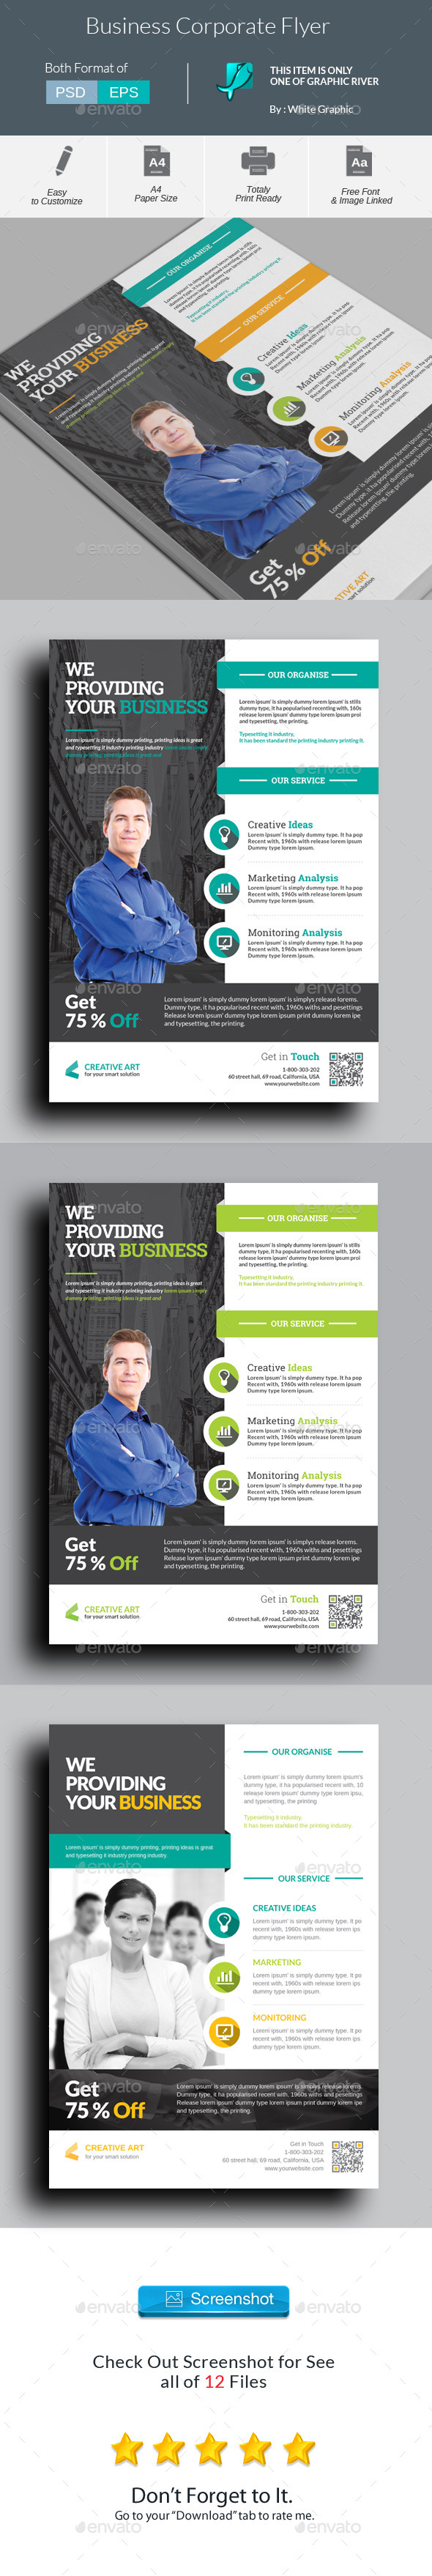 Corporate Flyer / Print Ad